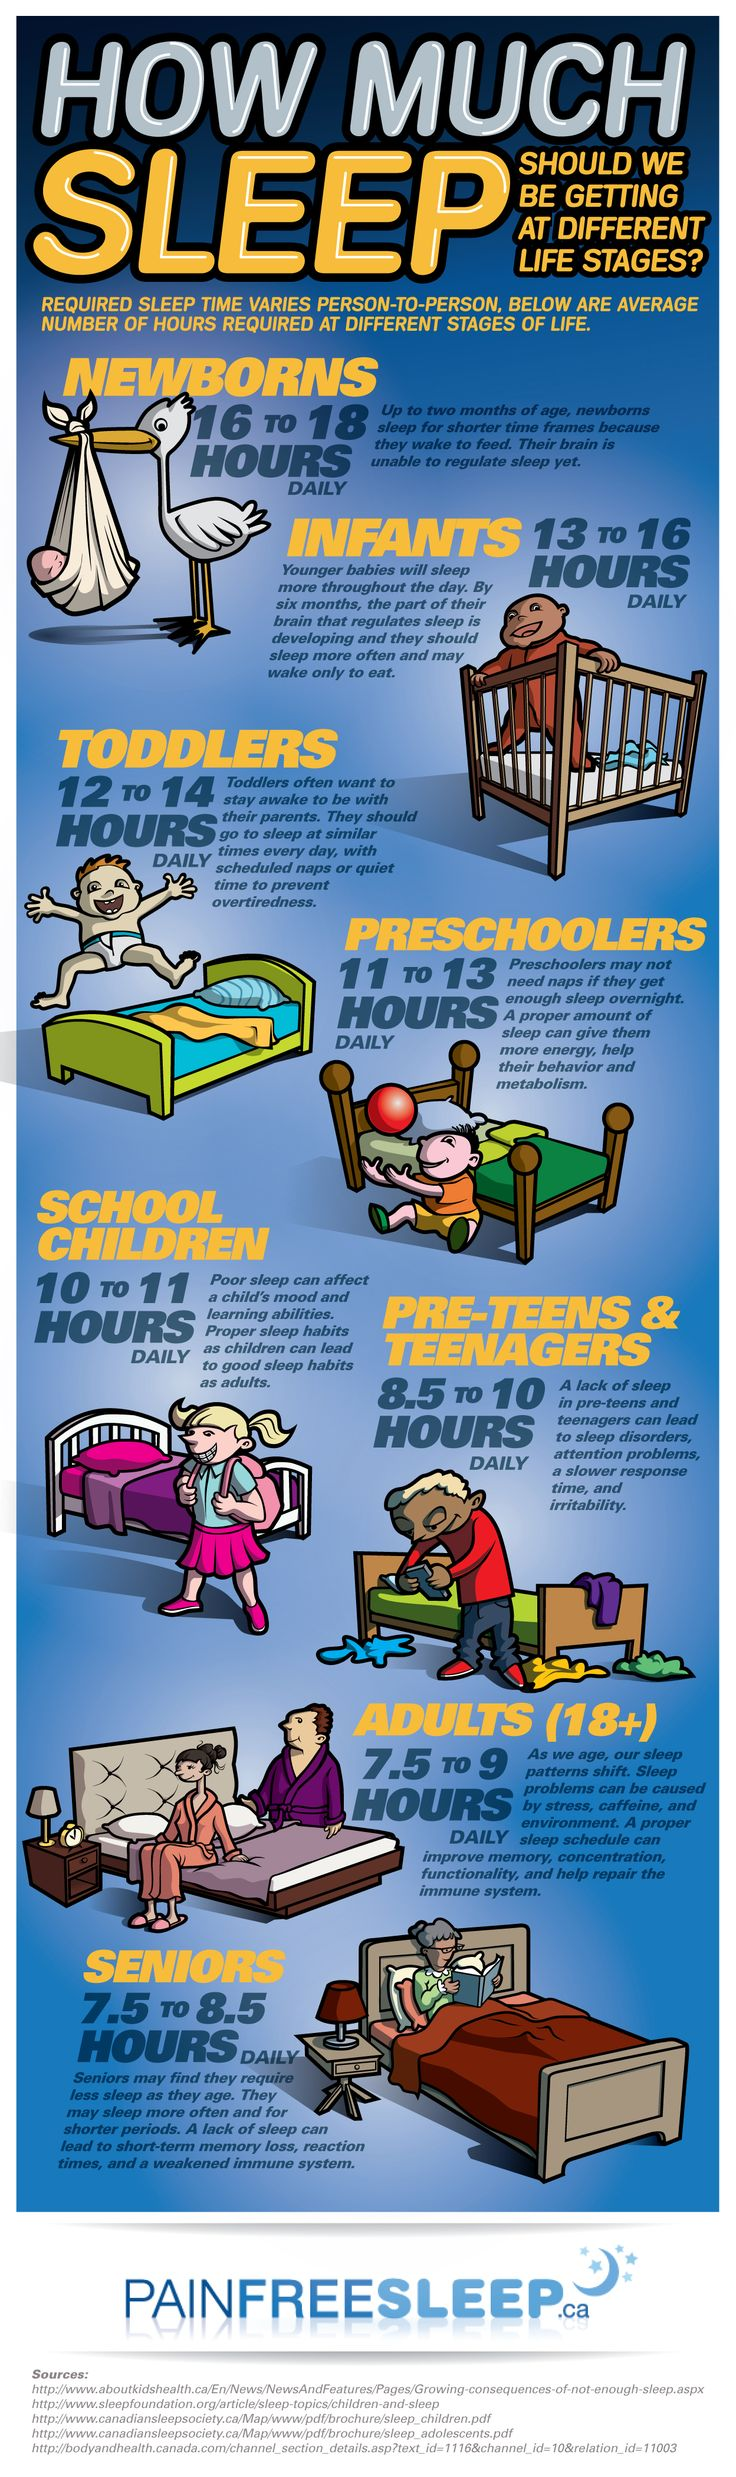 Many children are diagnosed with ADHD when they are actually sleep deprived. http://www.pinterest.com/jma1345/ap-psych/